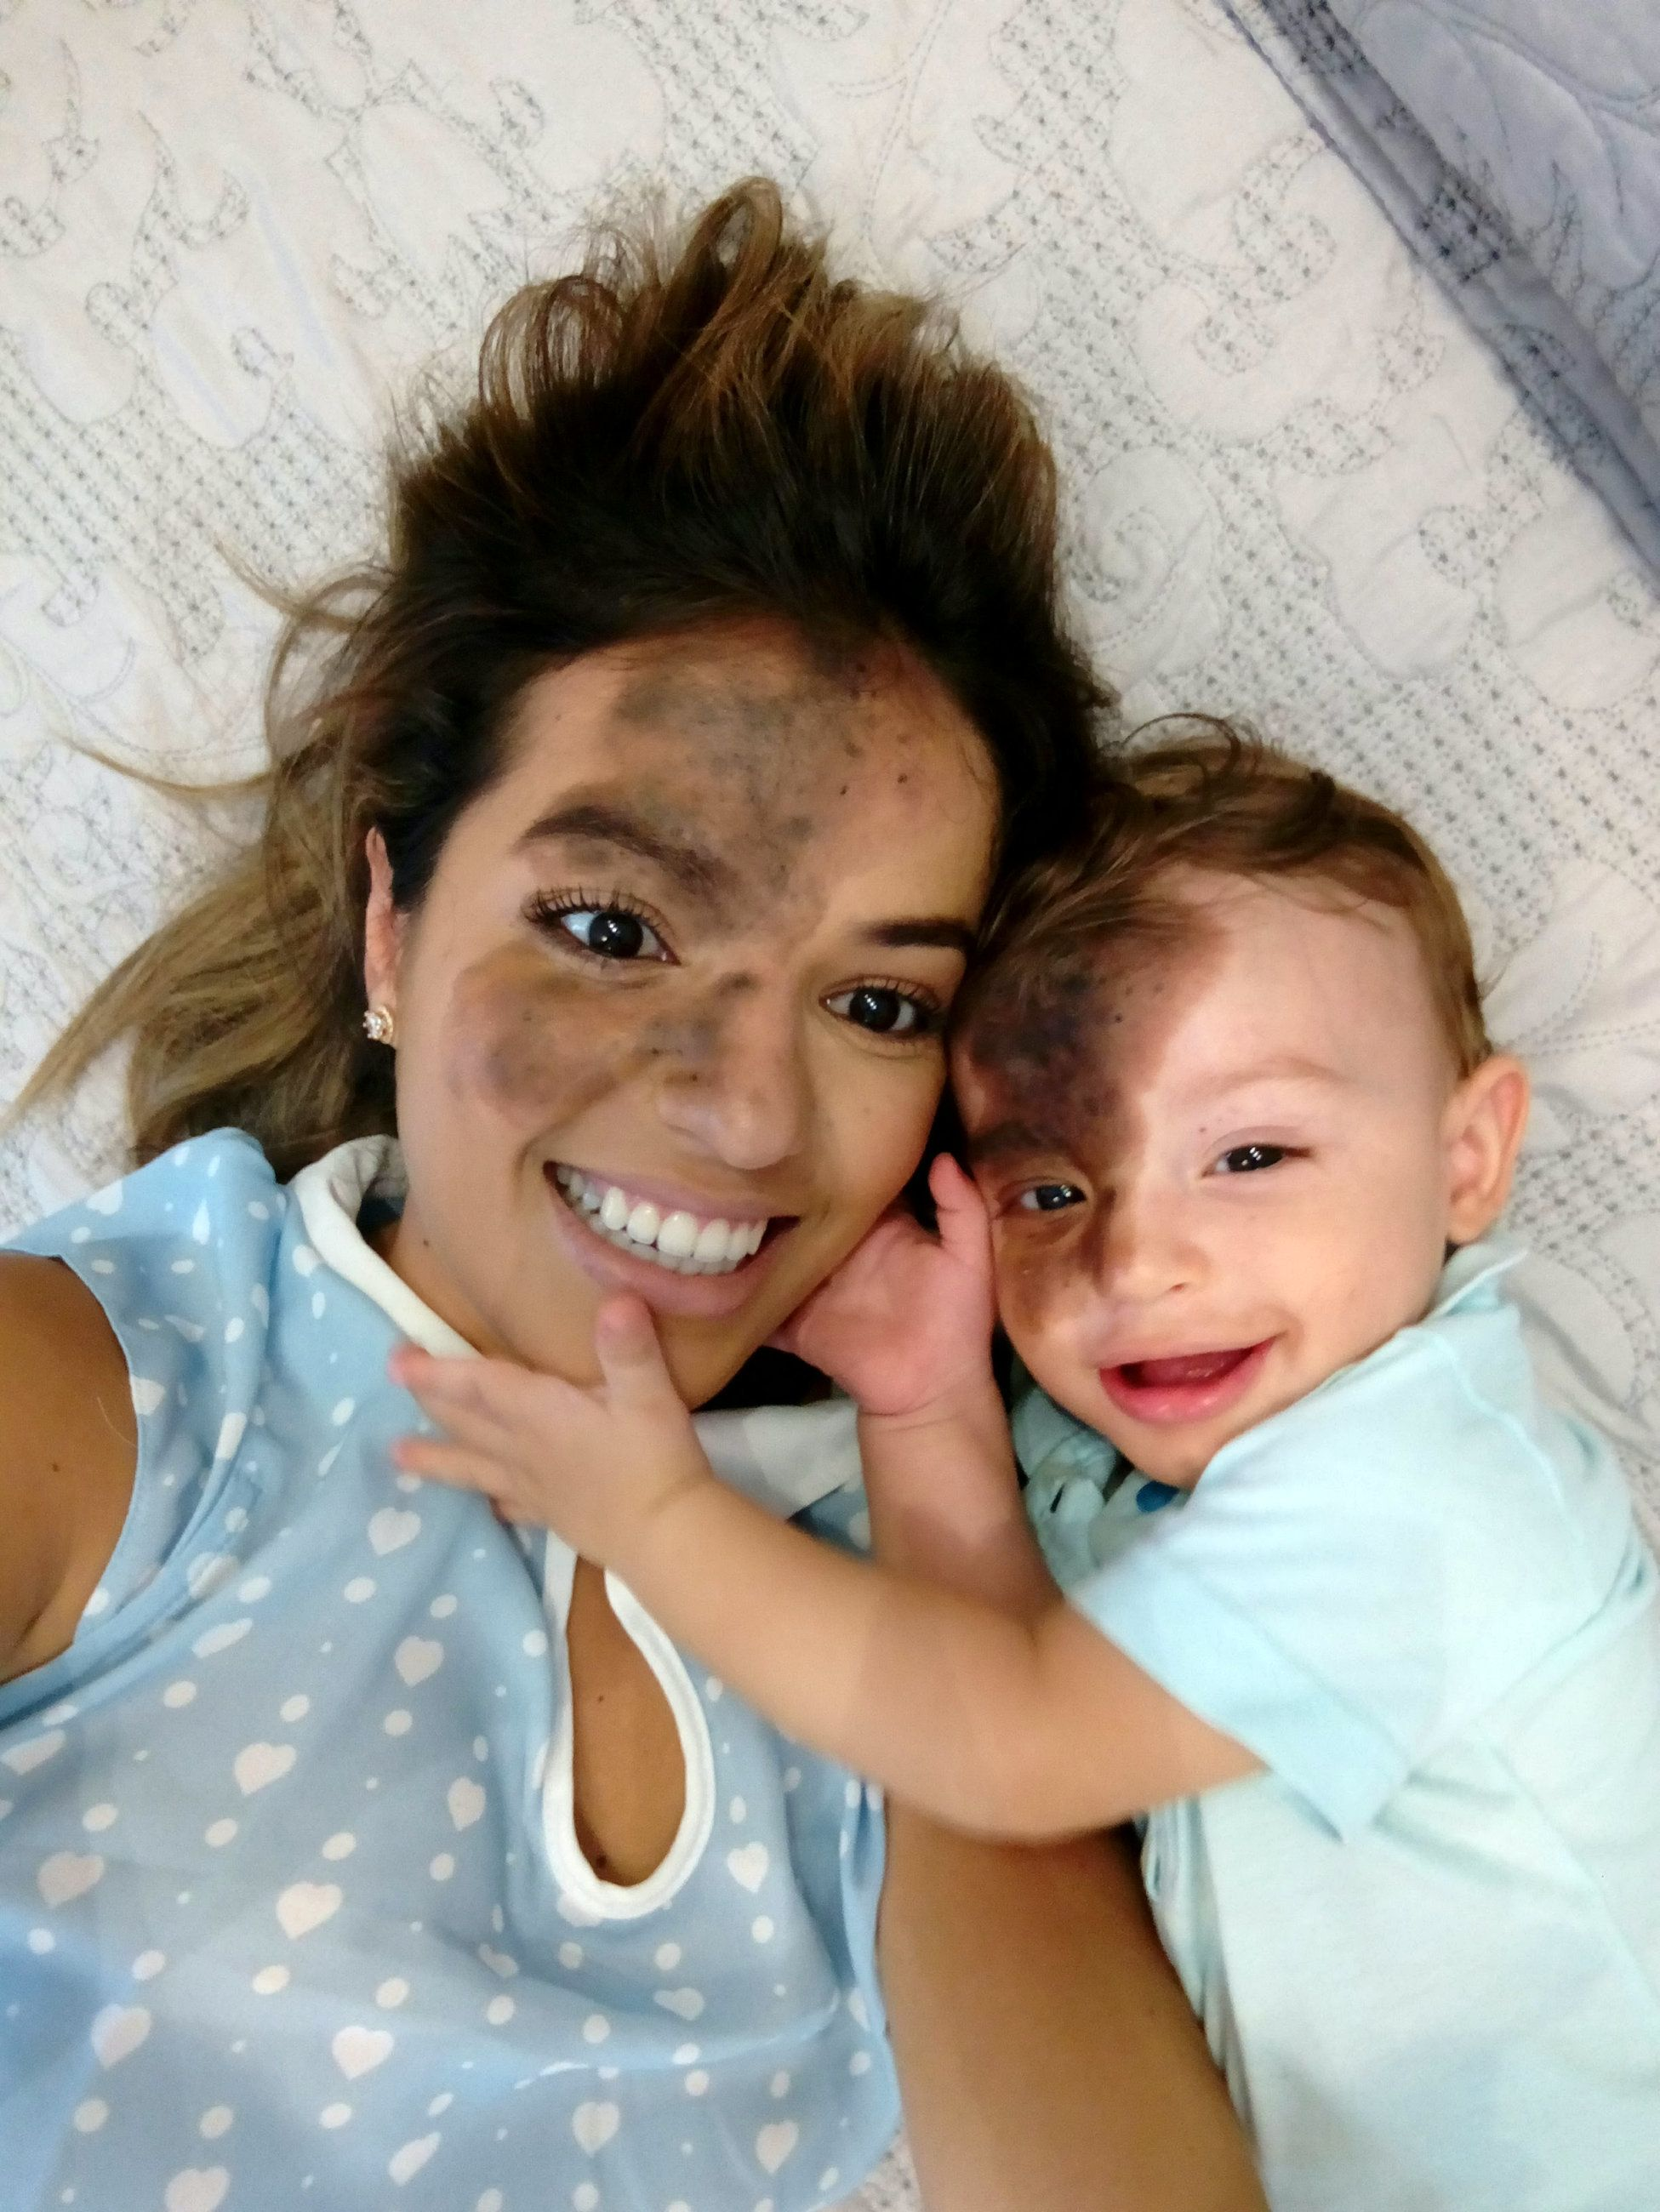 Mum Paints On Replica Of Son's Birthmark So She Can Experience The Prejudice He